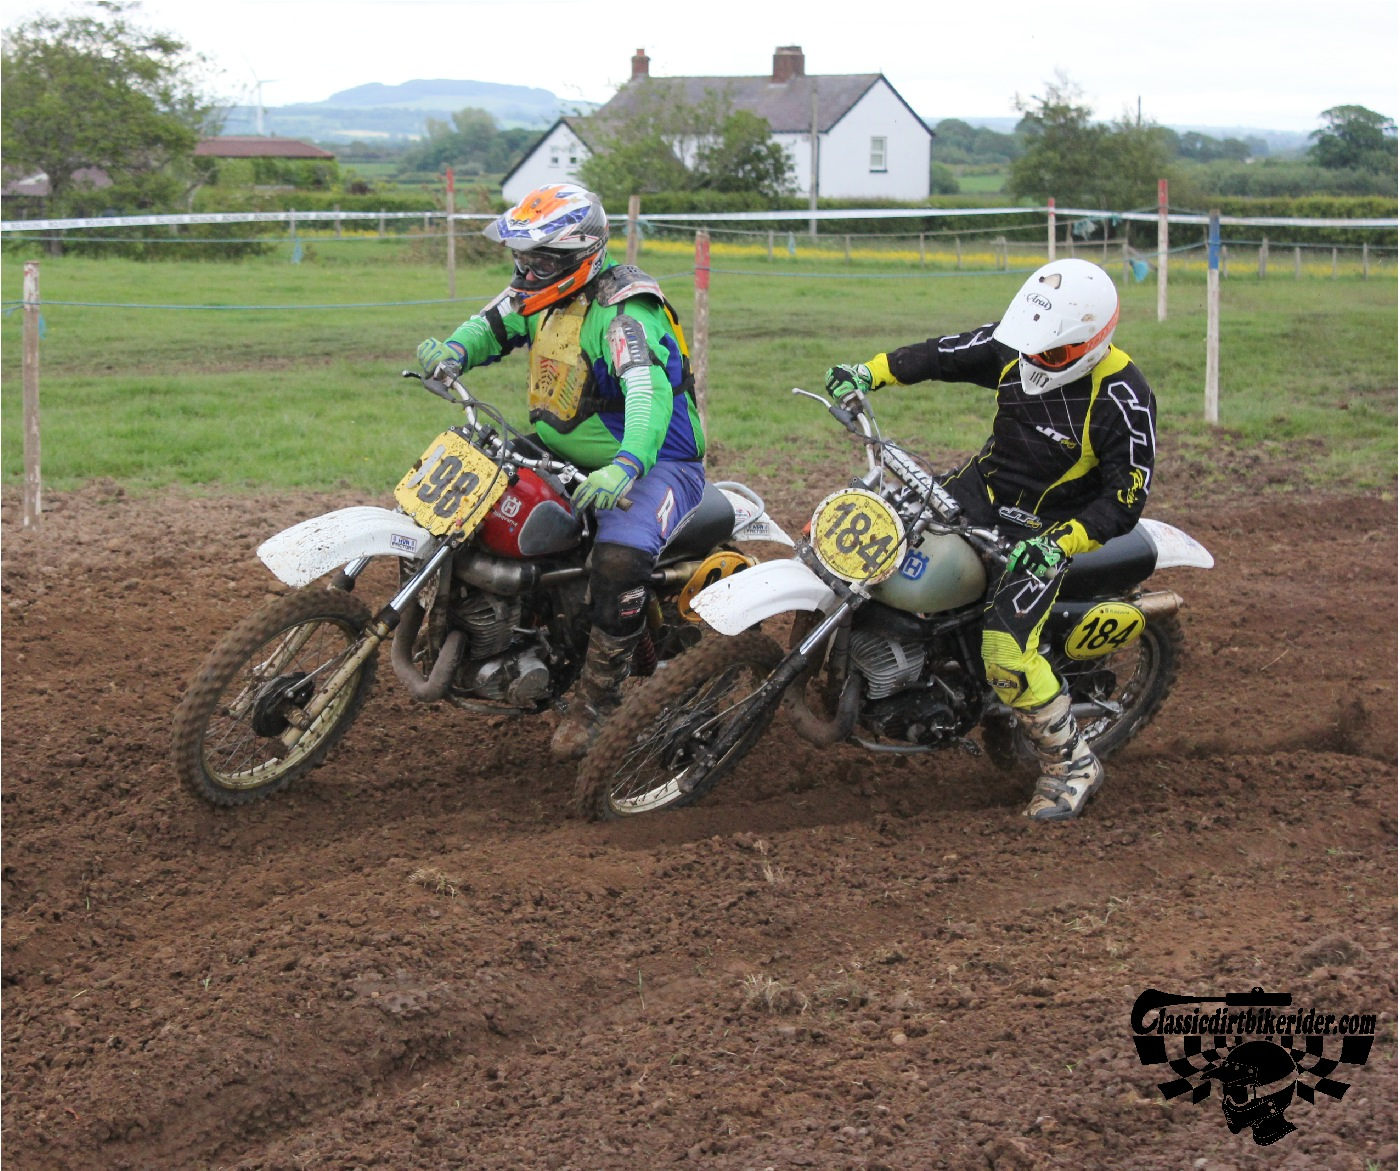 classicdirtbikerider.com-national-twinshock-championship-2015-Garstang-in the heat of battle 7